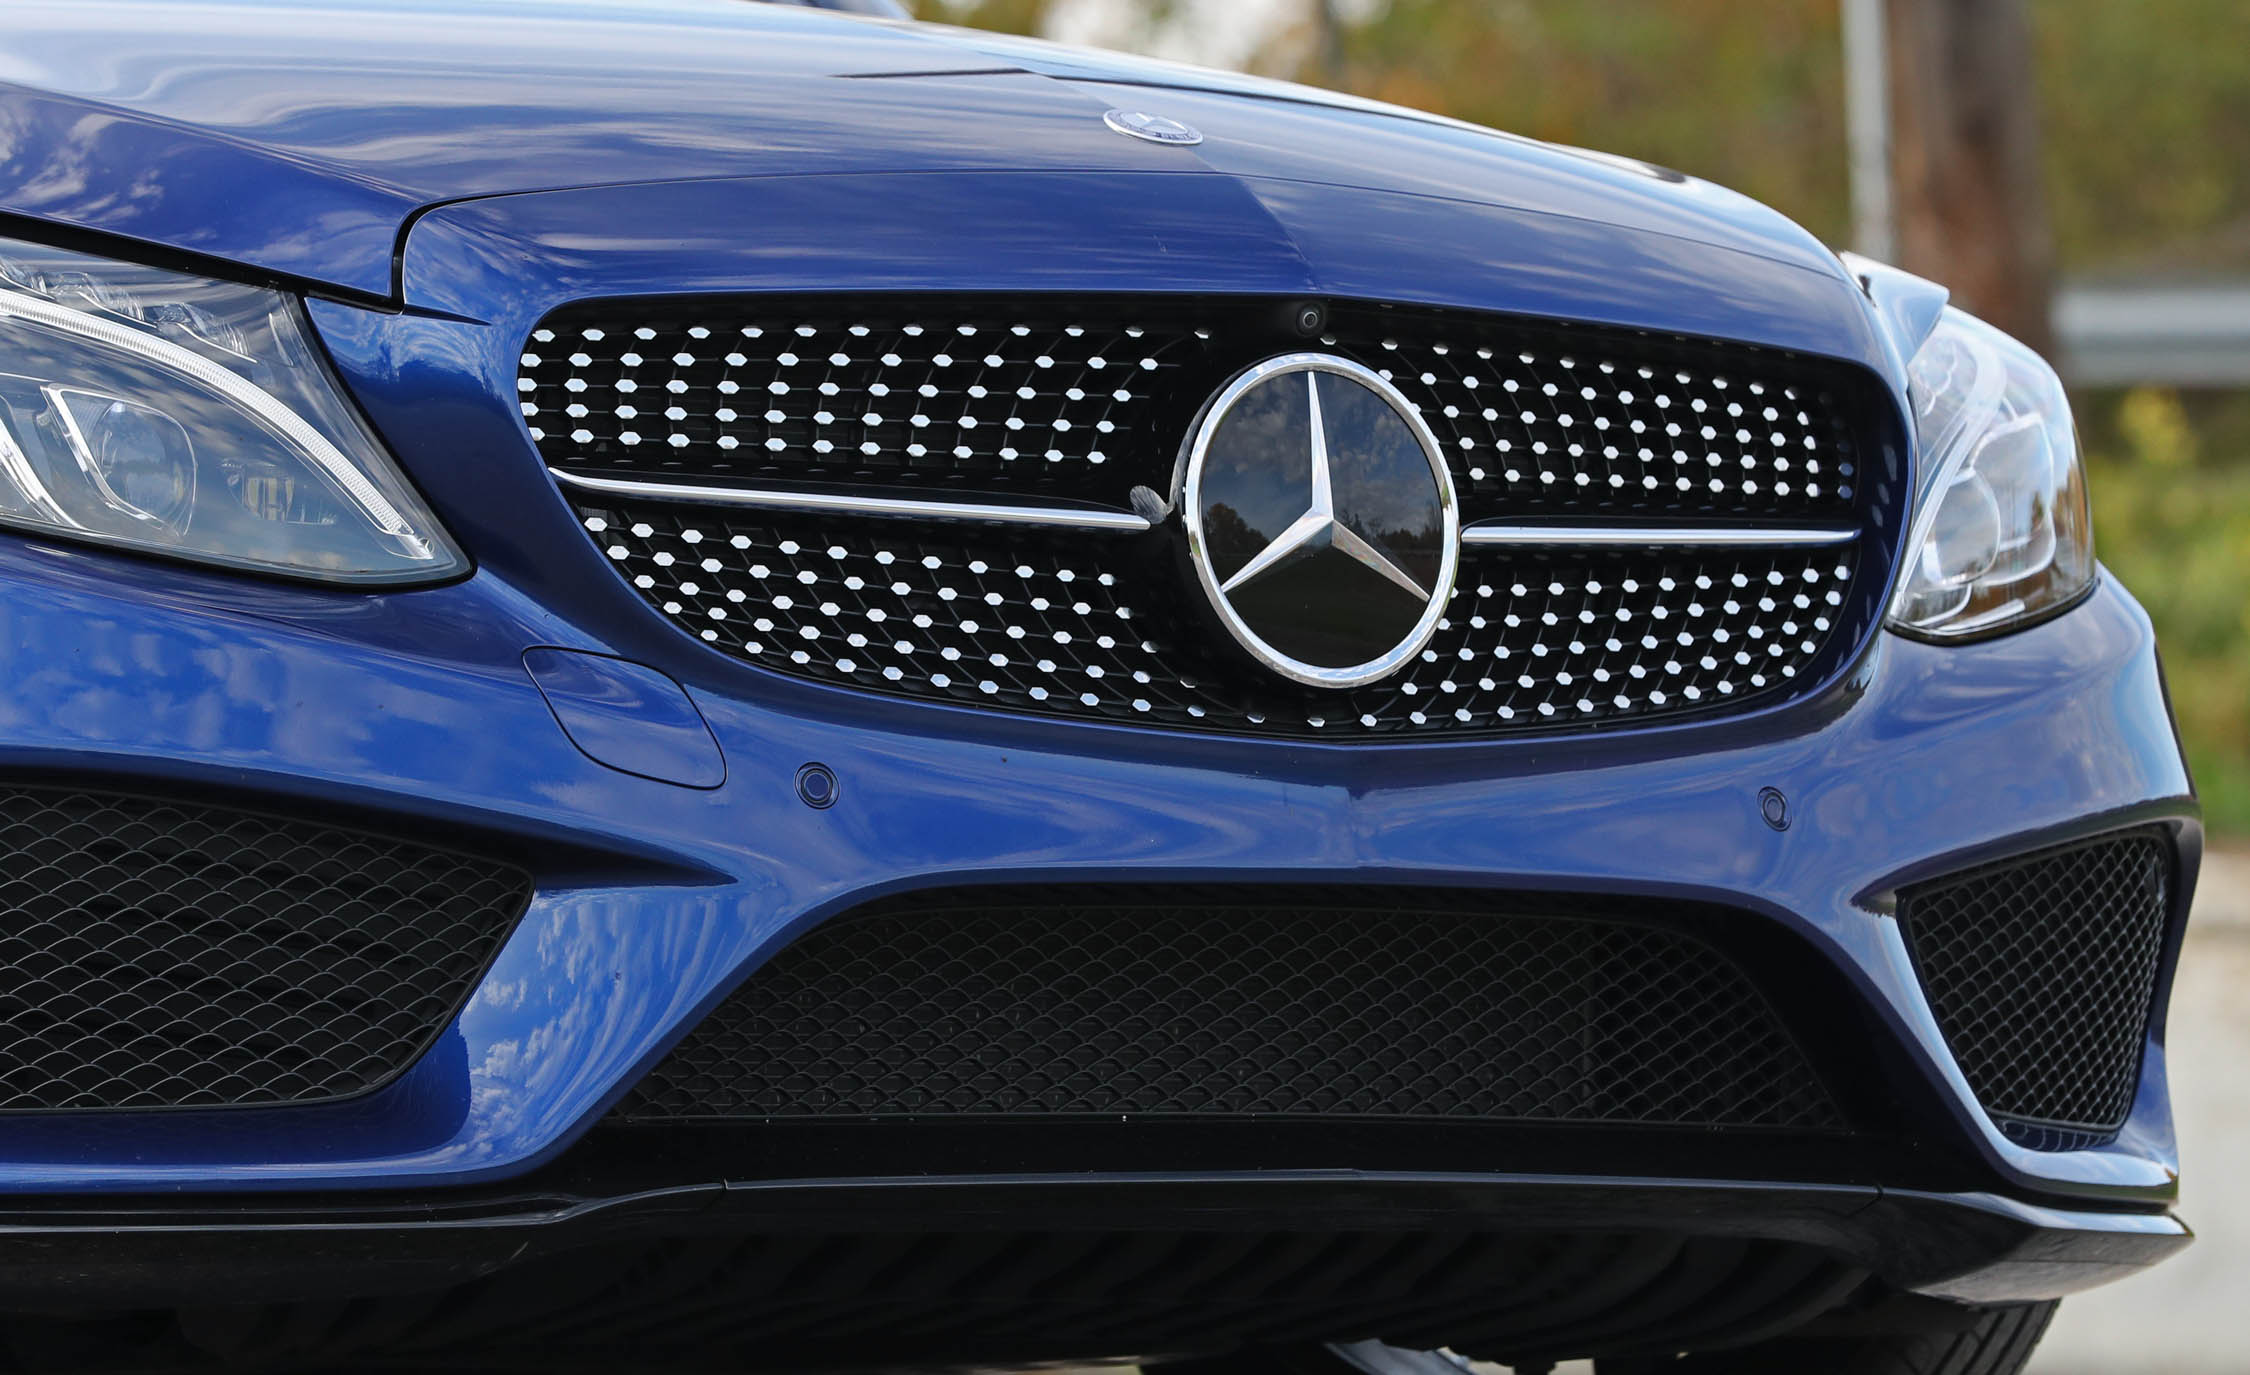 2017 Mercedes Benz C300 4MATIC Coupe Exterior View Grille And Bumper (View 31 of 44)